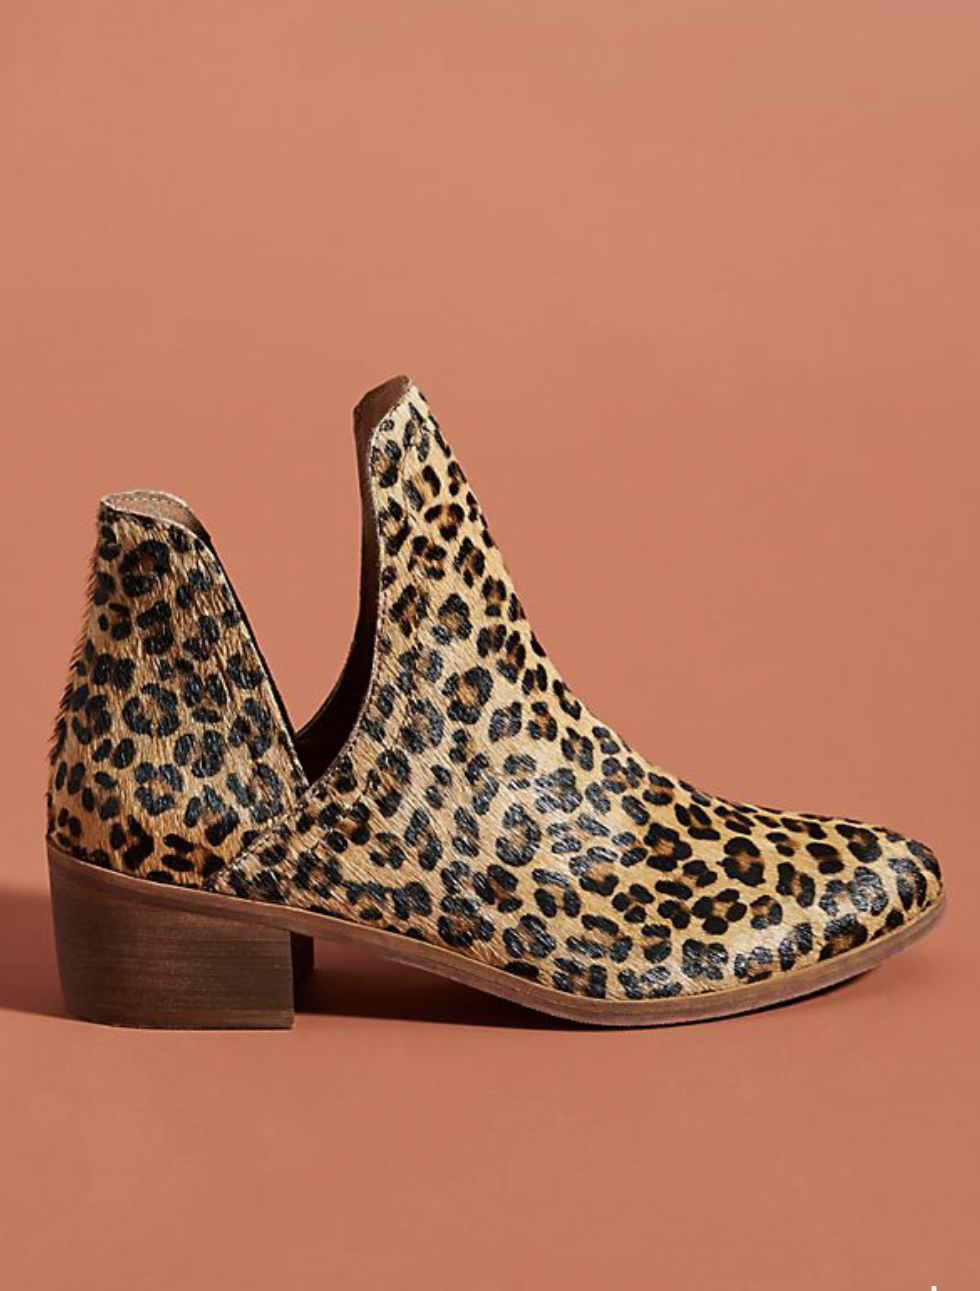 Anthropologie Matisse animal print ankle boots, $85.00